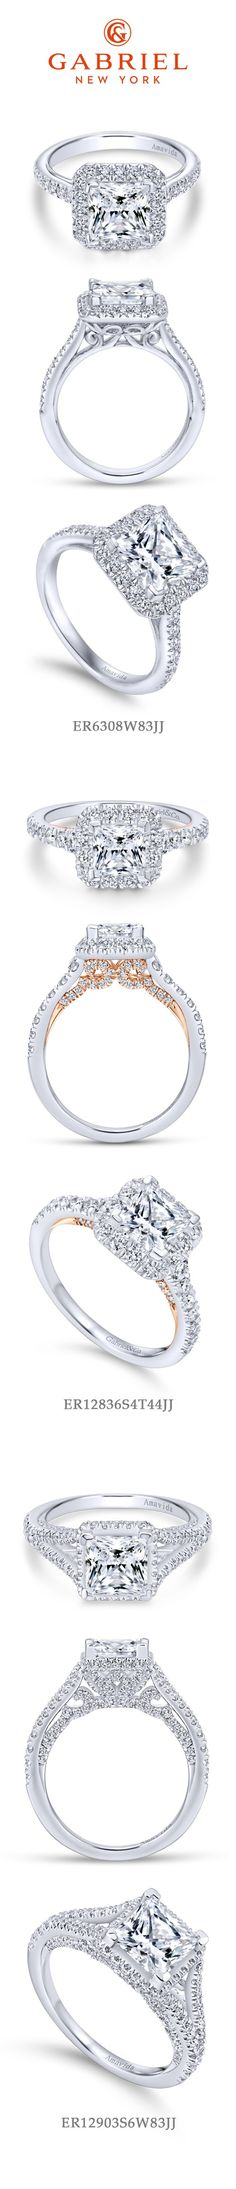 Gabriel NY - Preferred Fine Jewelry and Bridal Brand. Top 3 Princess Cut Engagement Rings. Ranging from princess cut halo wedding rings to a hint of rose gold and split shank.